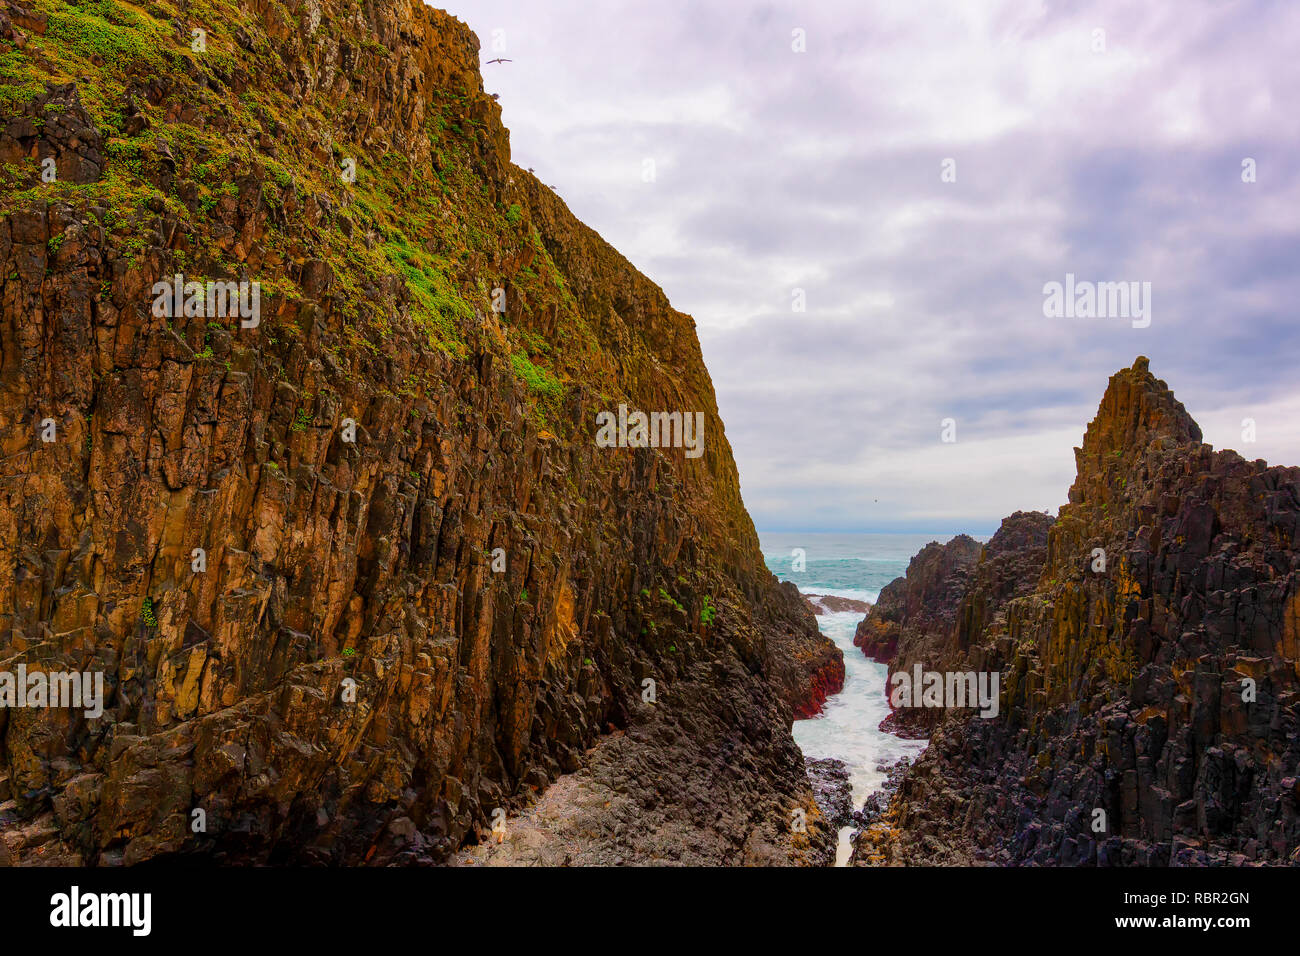 Landscape view seen from Seal Rock Beach in Oregon - Stock Image